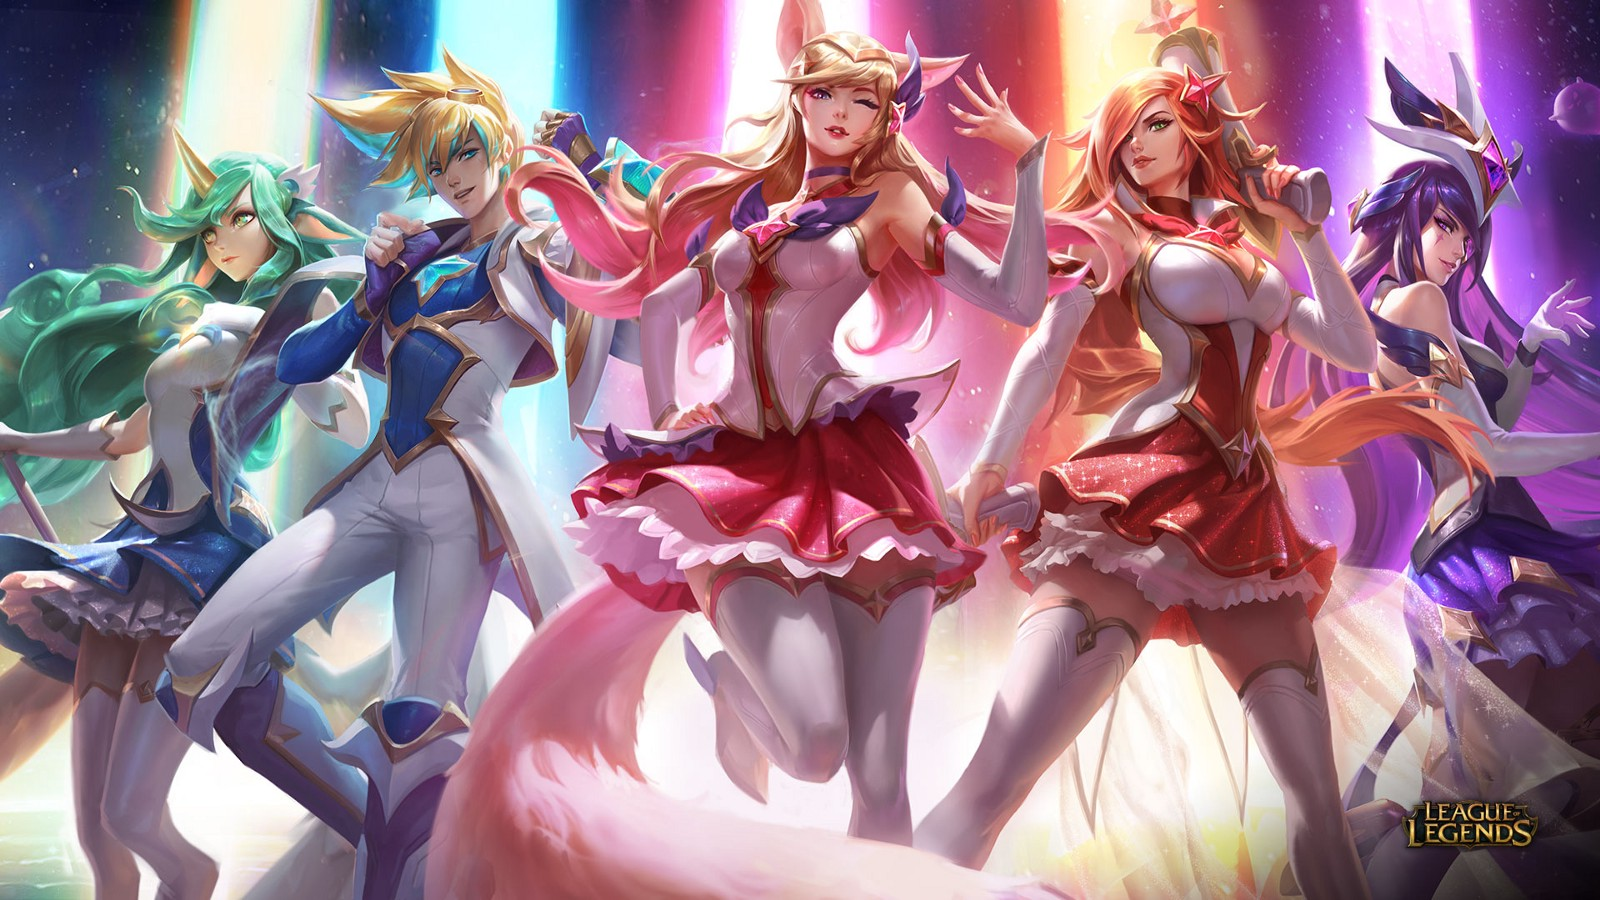 League of Legends: Star Guardian Skins Now Available